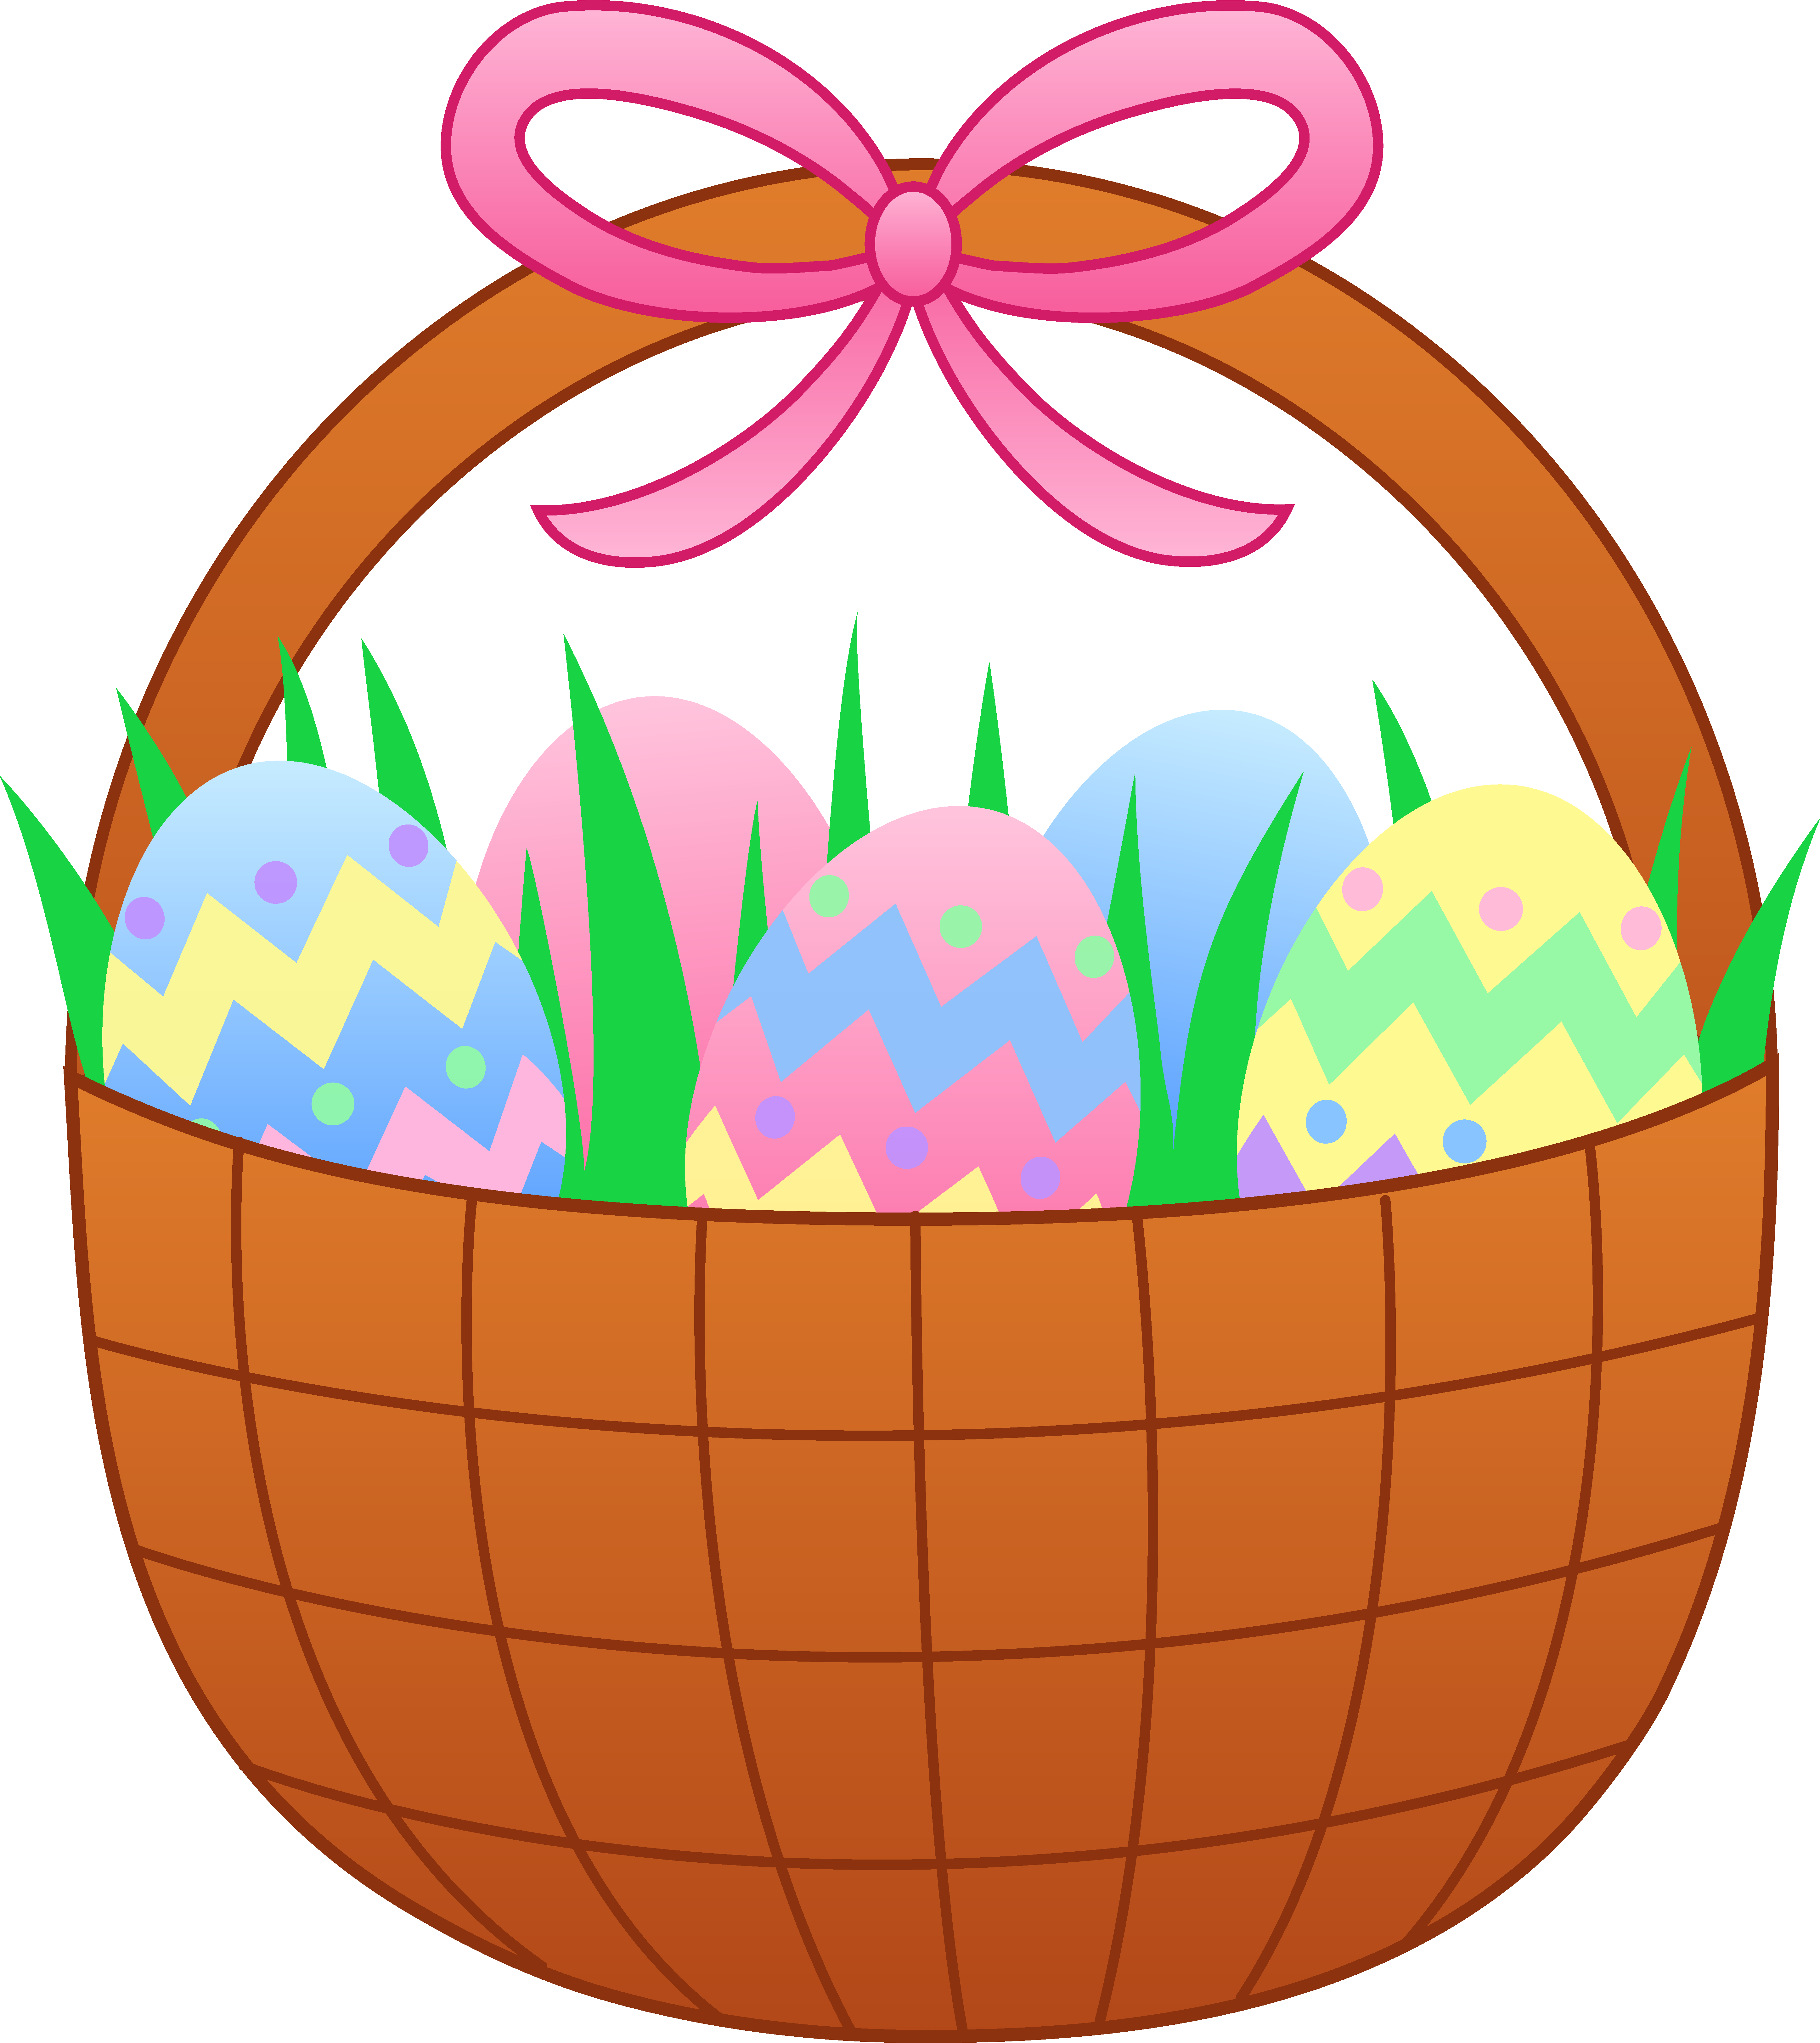 Easter with colorful eggs. Raffle clipart breakfast basket